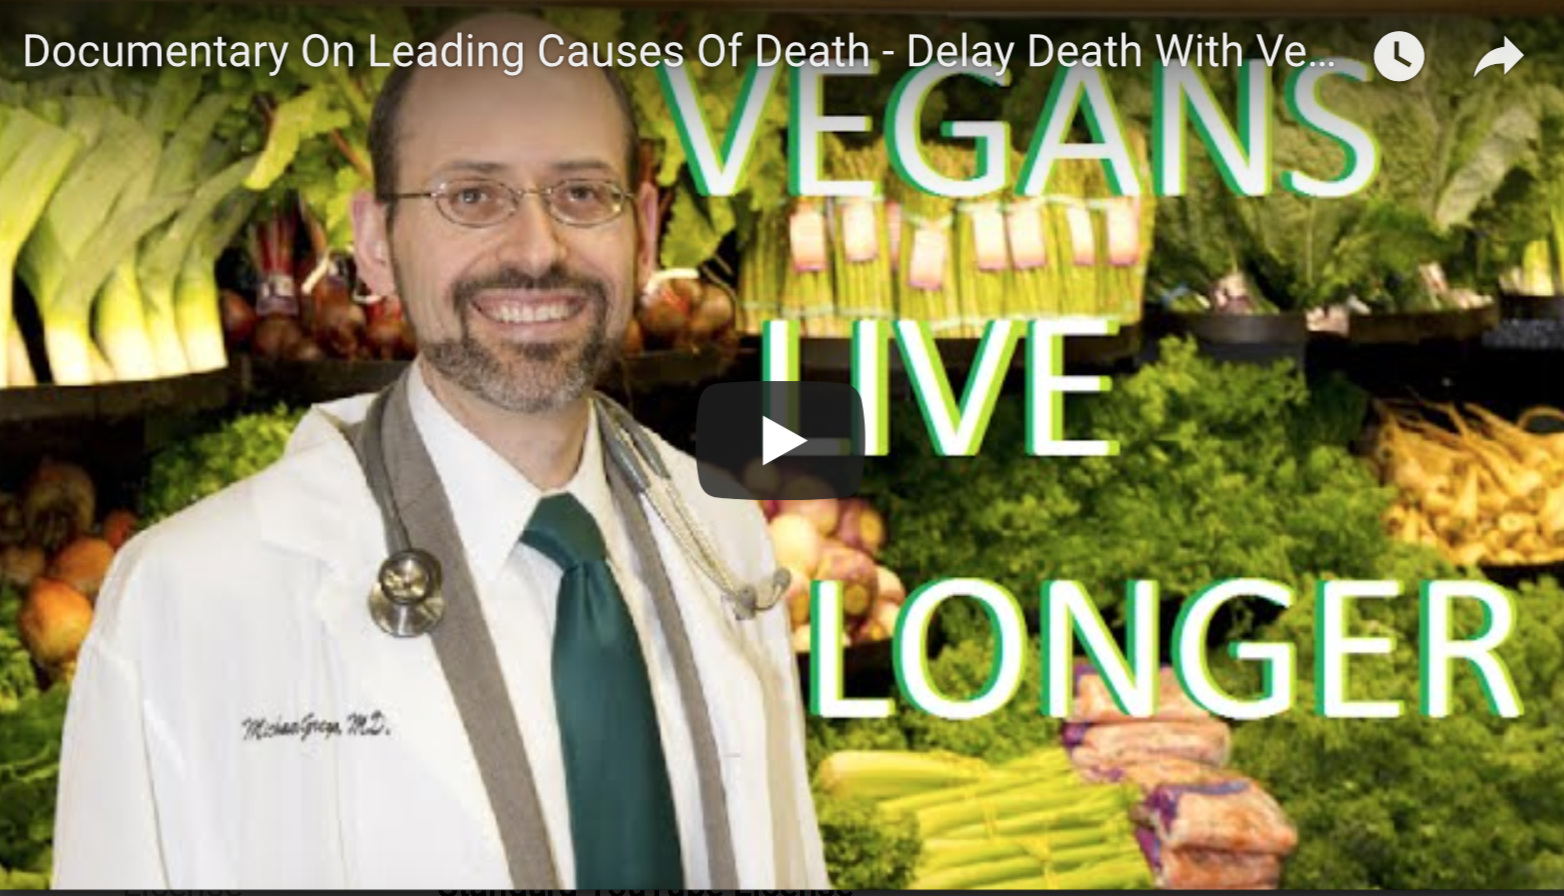 Documentary On Leading Causes Of Death - Delay Death With Veganism | VeganFlix